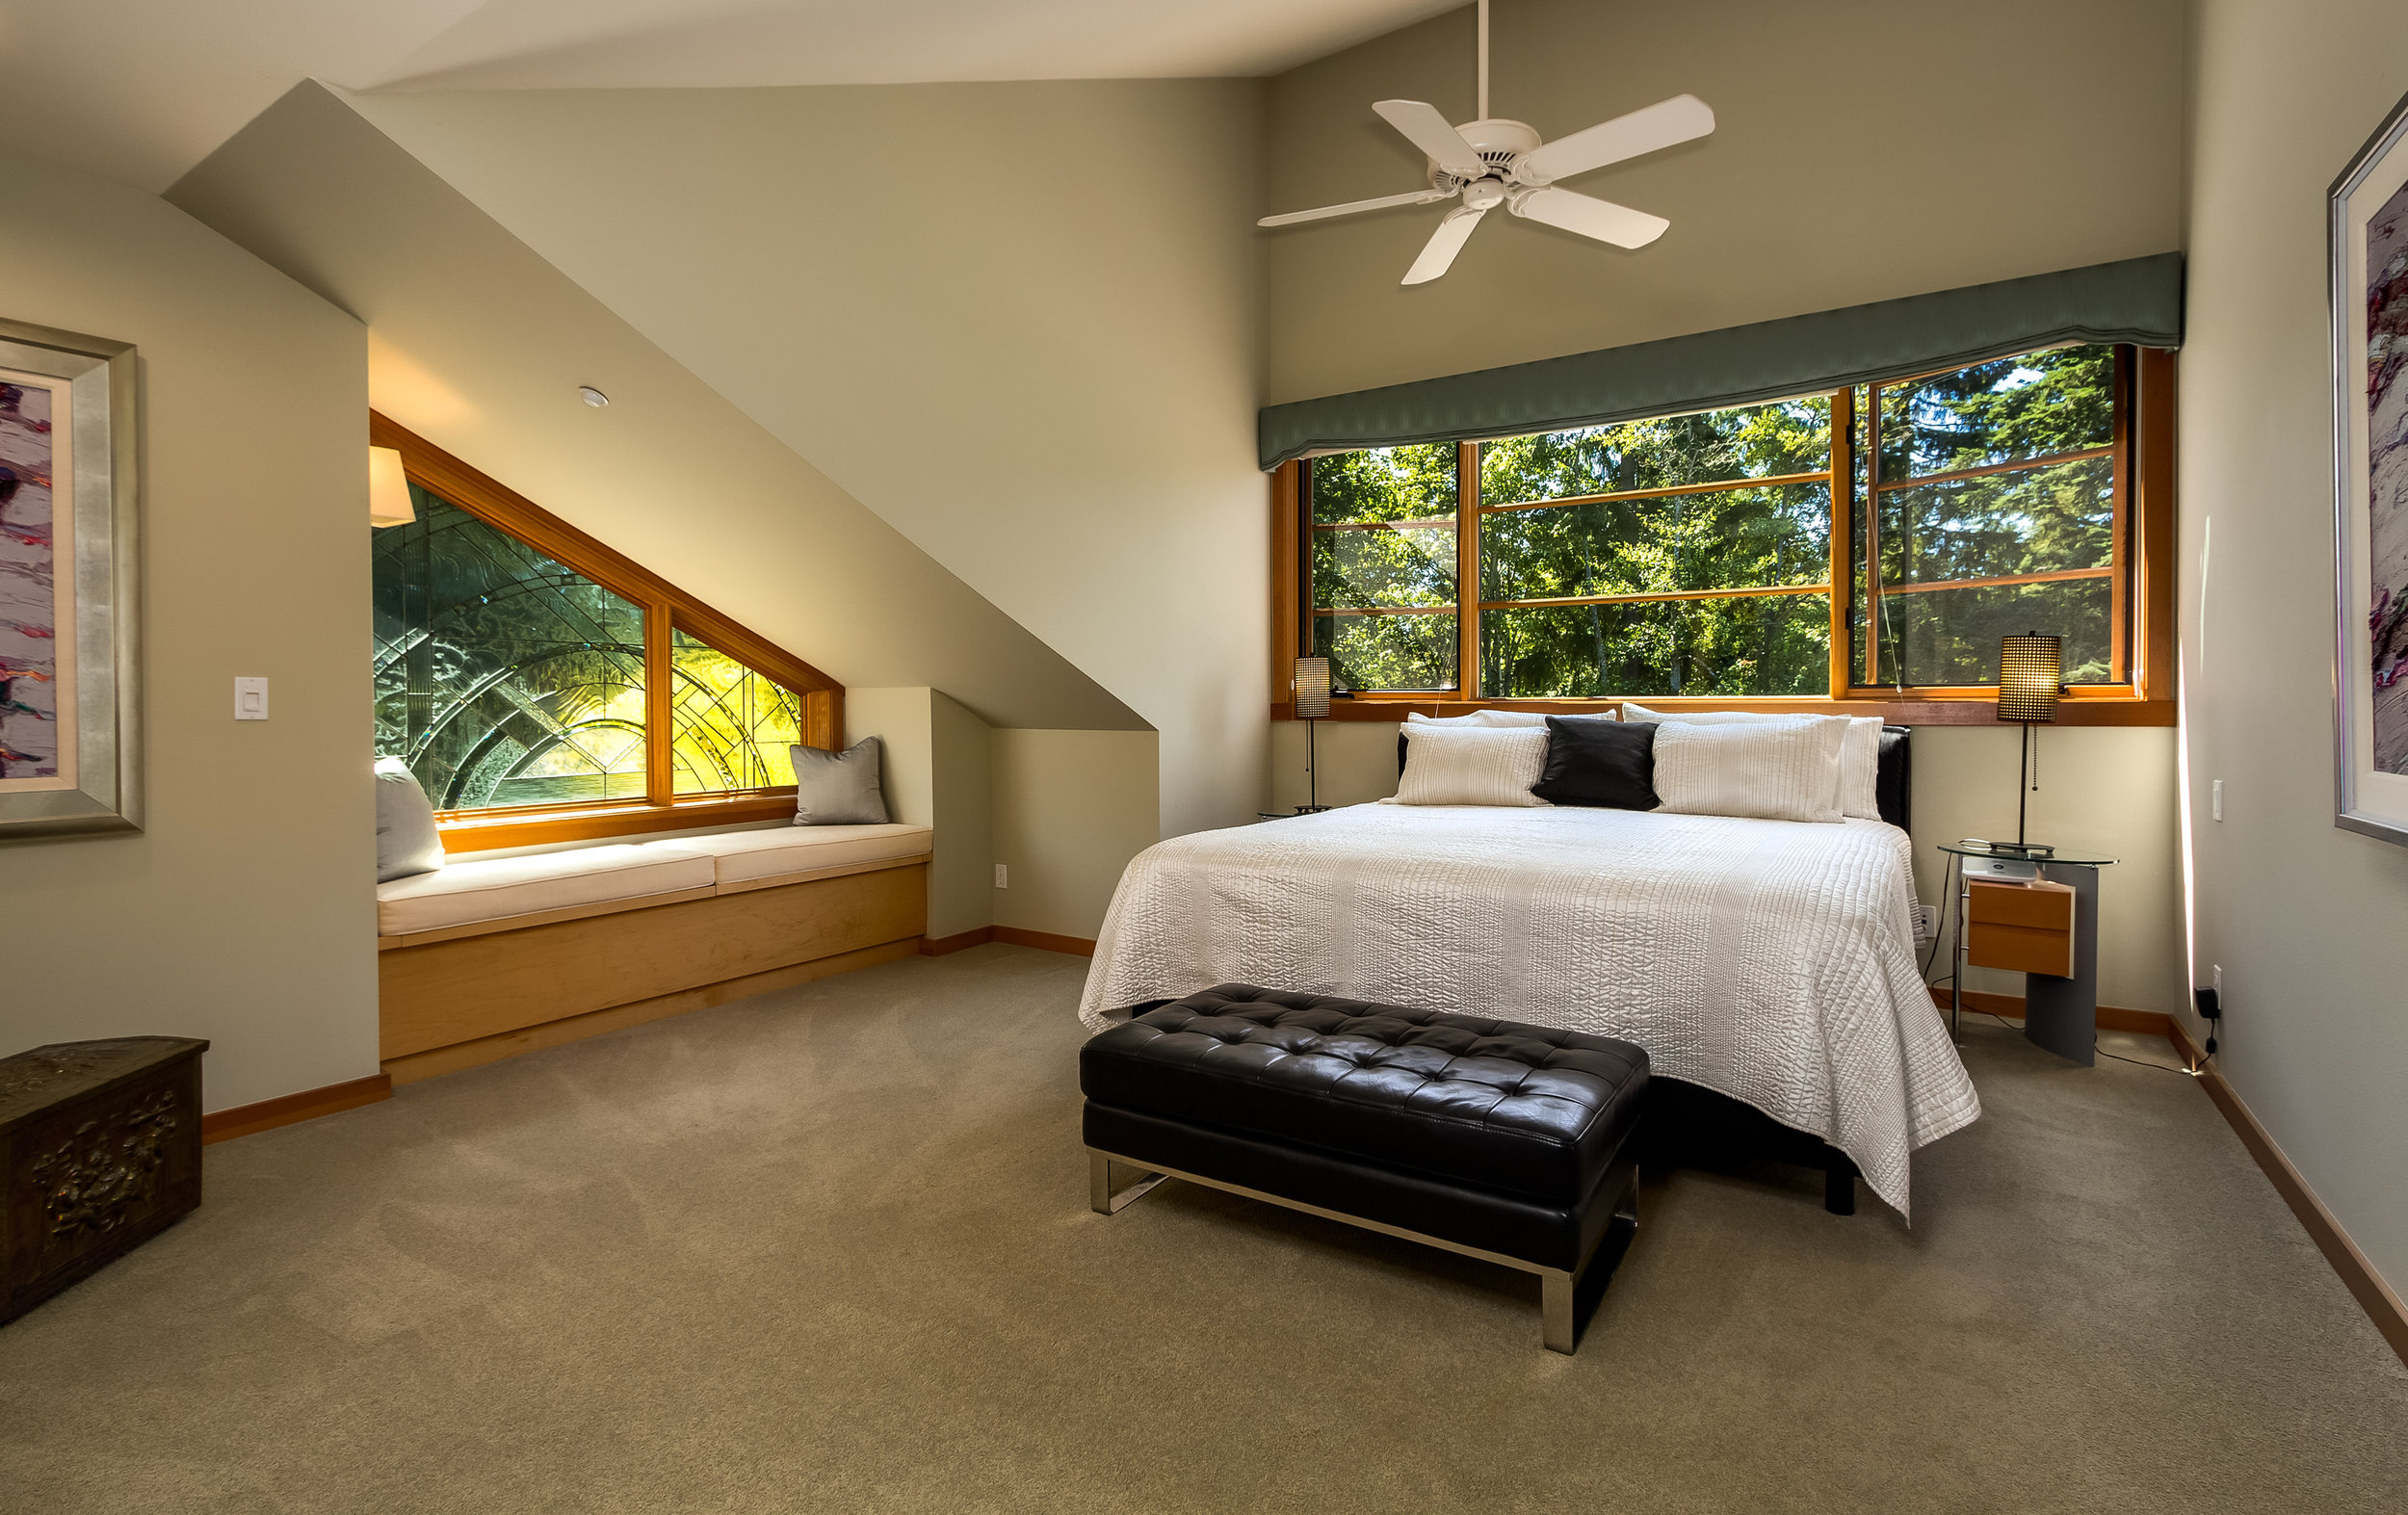 Master Bedroom on second floor is huge! Vaulted ceilings, window bench complimented with Artisan leaded glass, ceiling fan and walk in closet all add to the space.